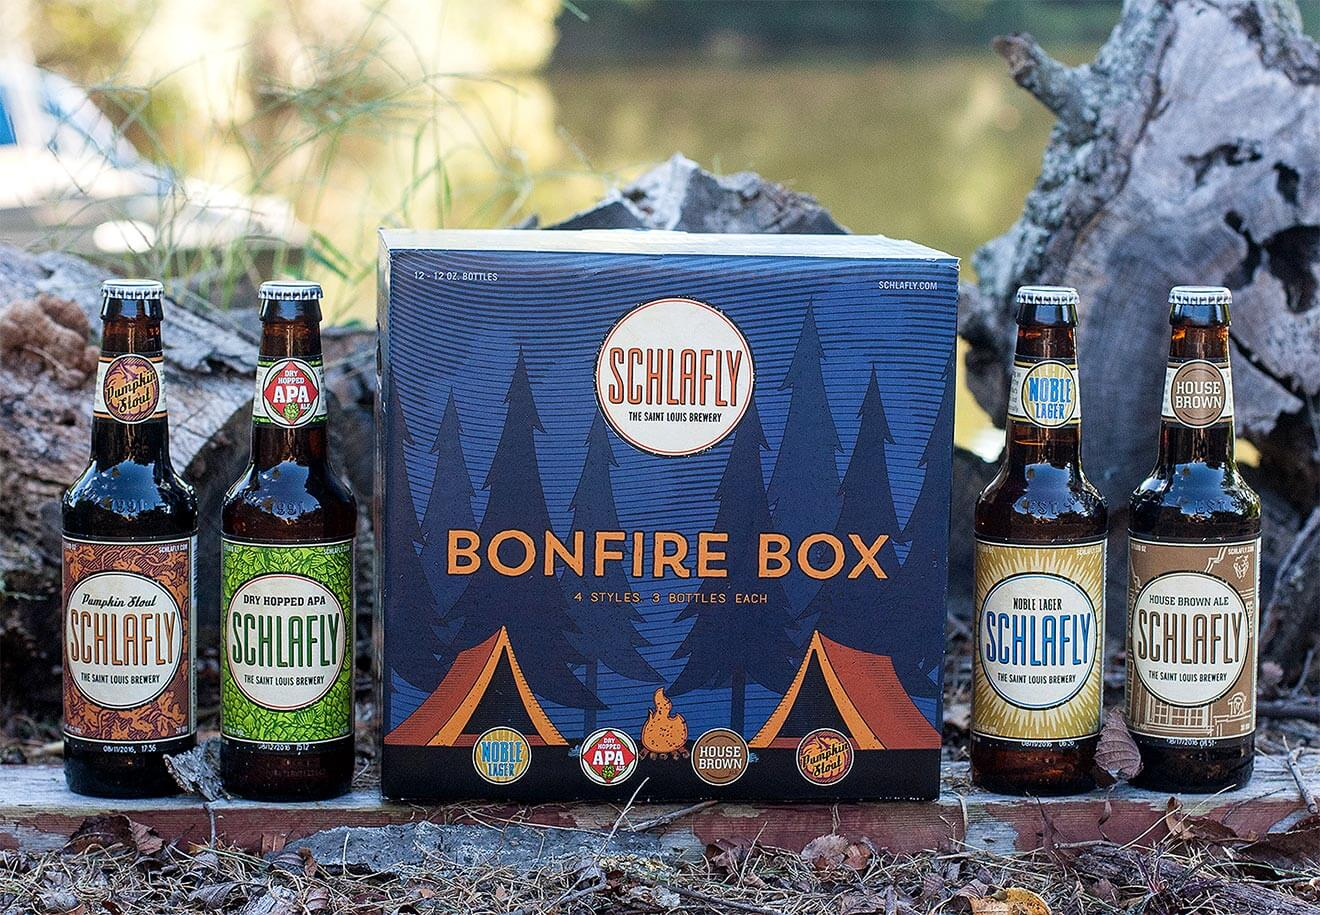 bonfire variety pack from schlafly brewing company